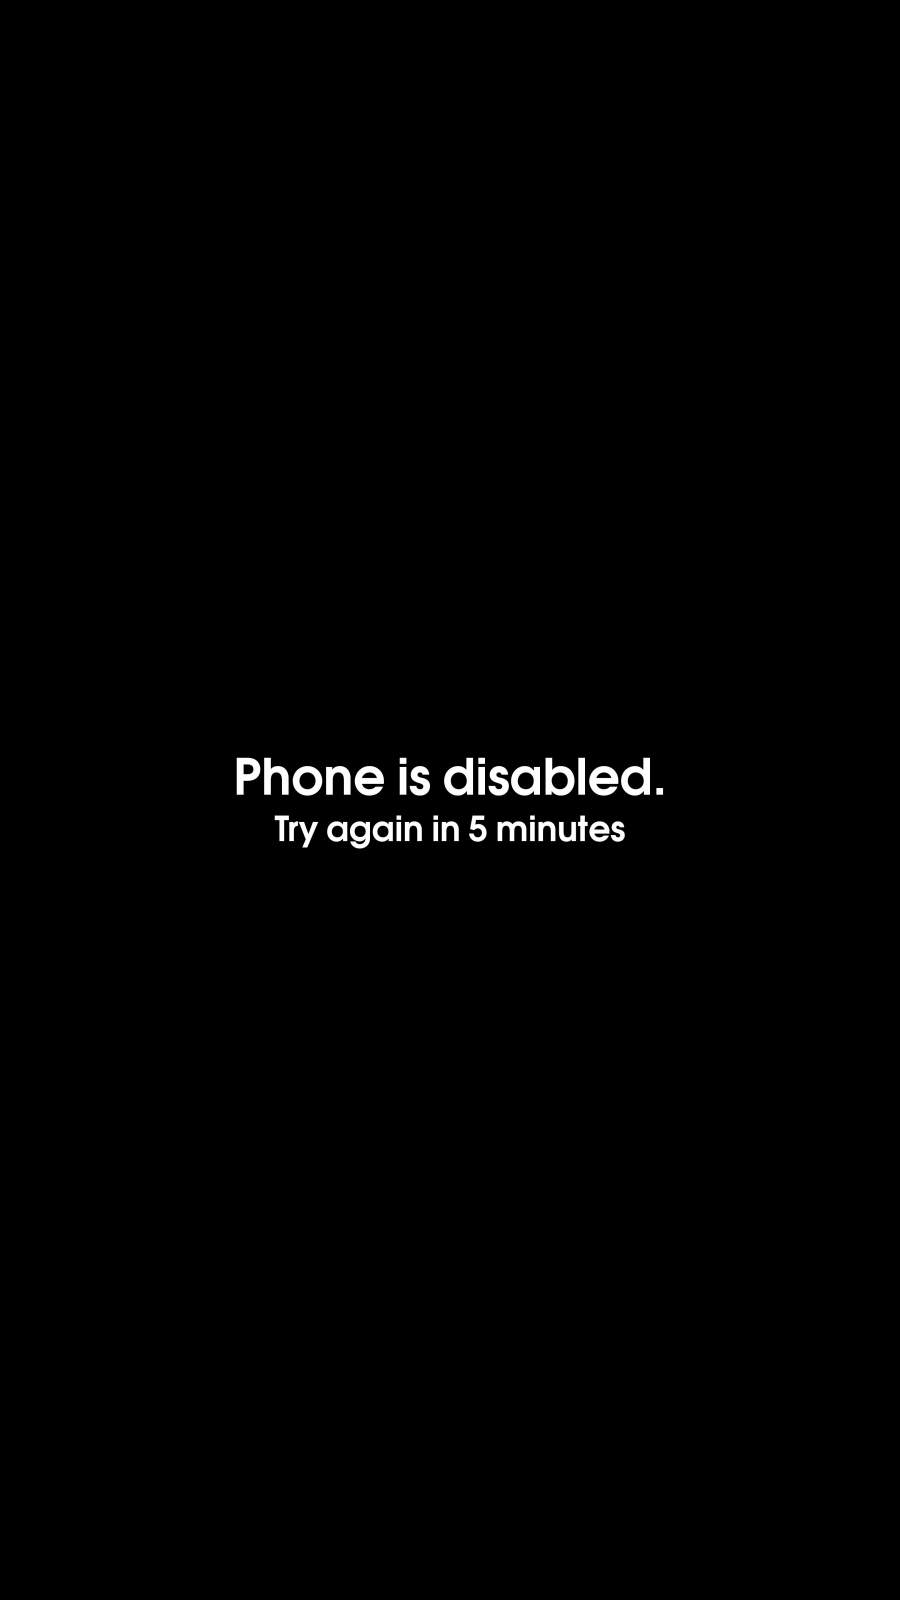 Phone is Disabled iPhone Wallpaper